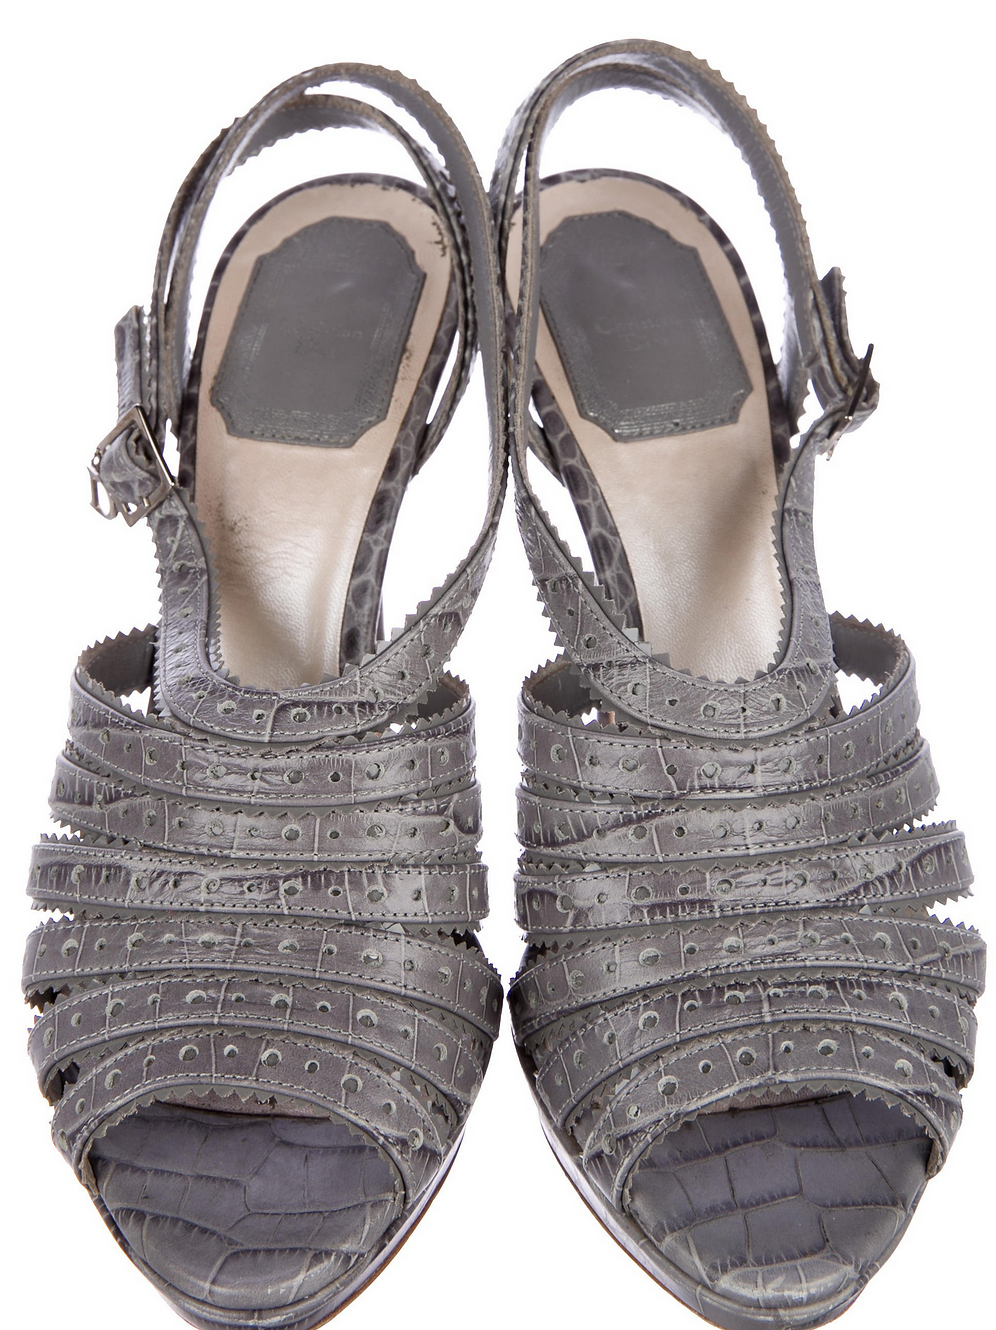 989c18210 Grey crocodile Christian Dior Bonnie sandals with patent leather trim |  BagsandBottoms.com